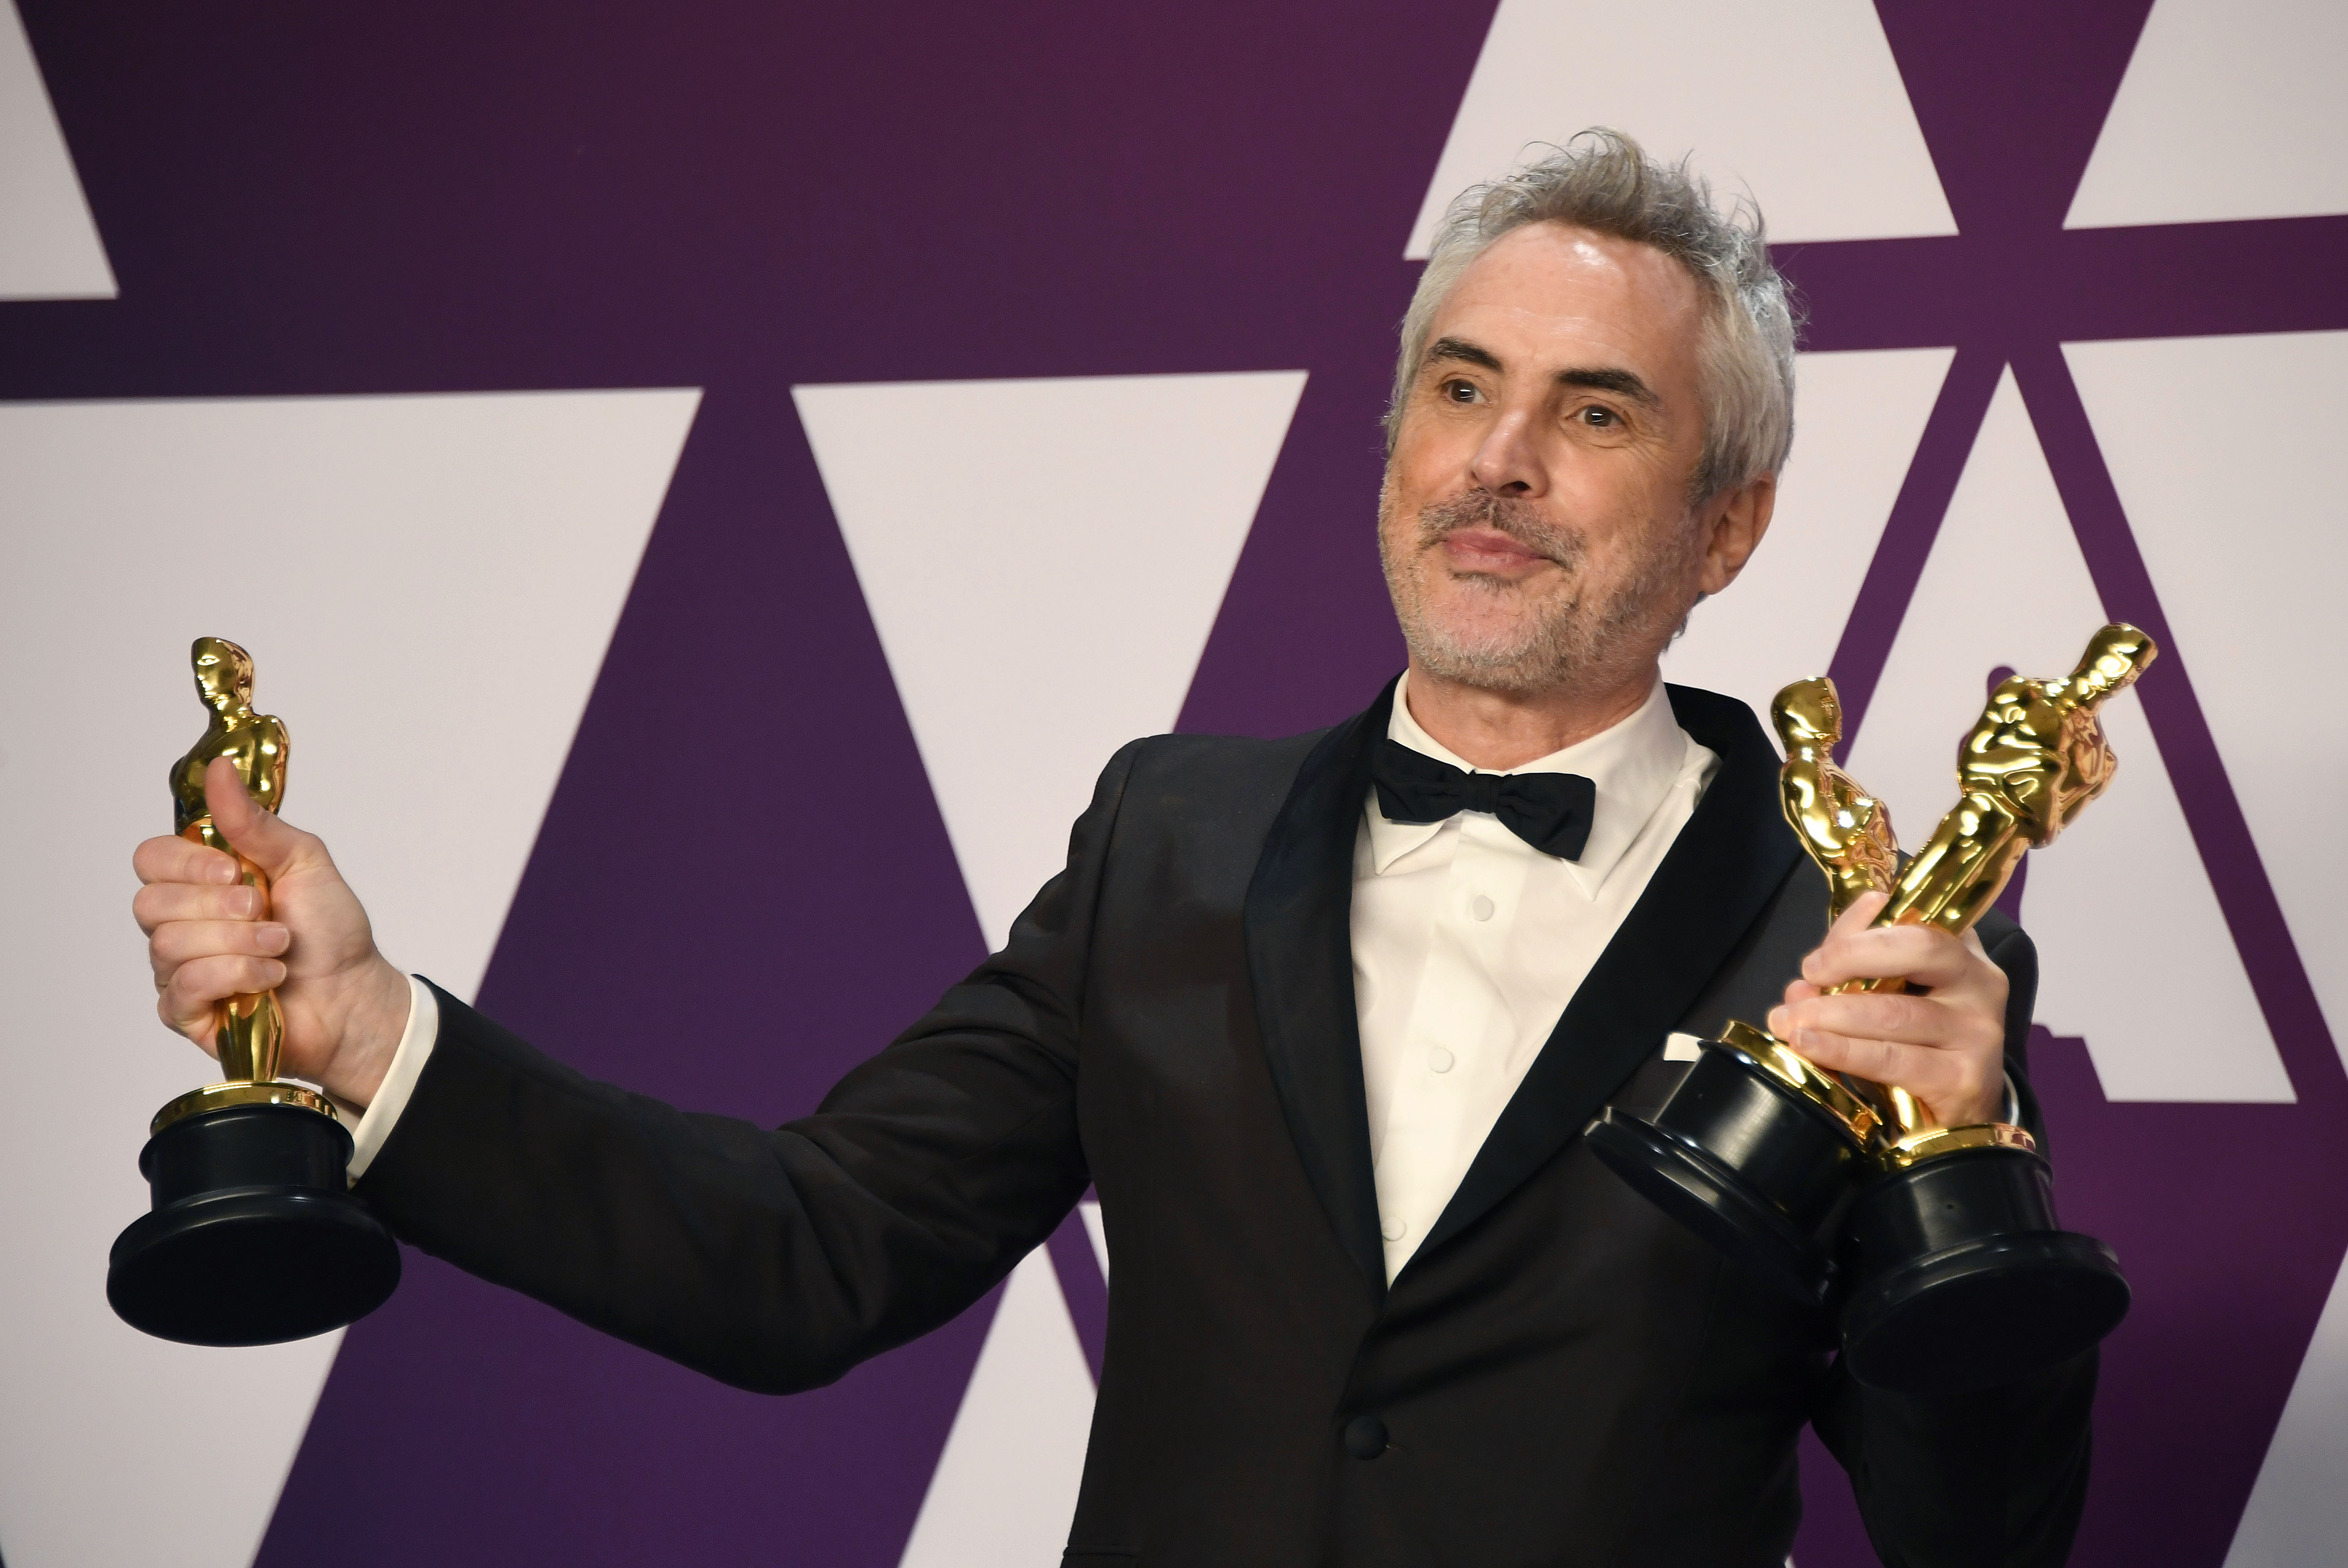 Alfonso Cuarón Made History at the 2019 Oscars